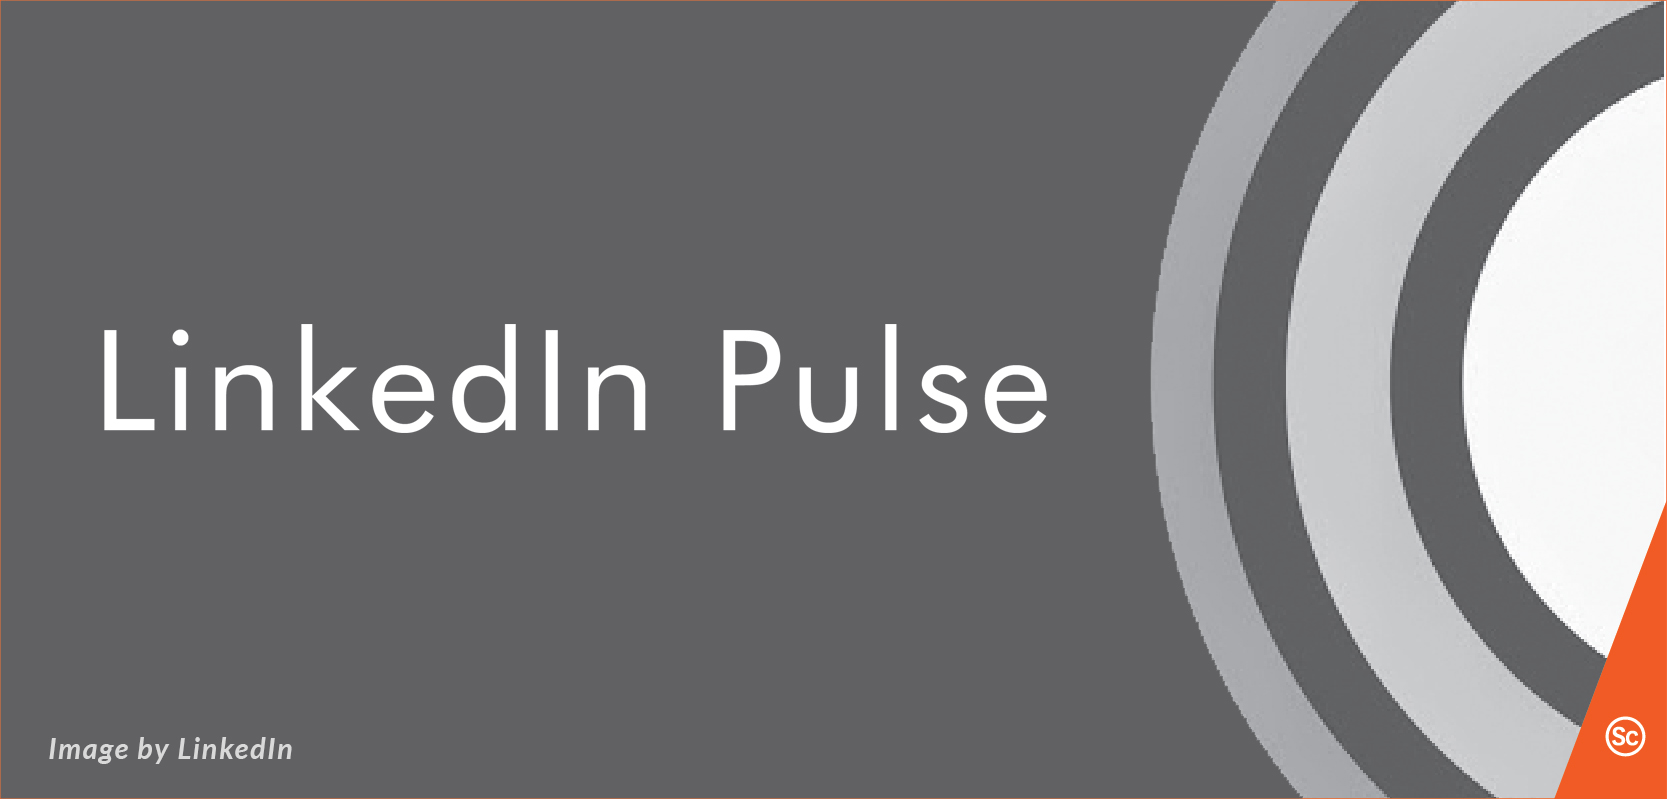 How do I use Pulse as part of my LinkedIn Social Media Strategy?